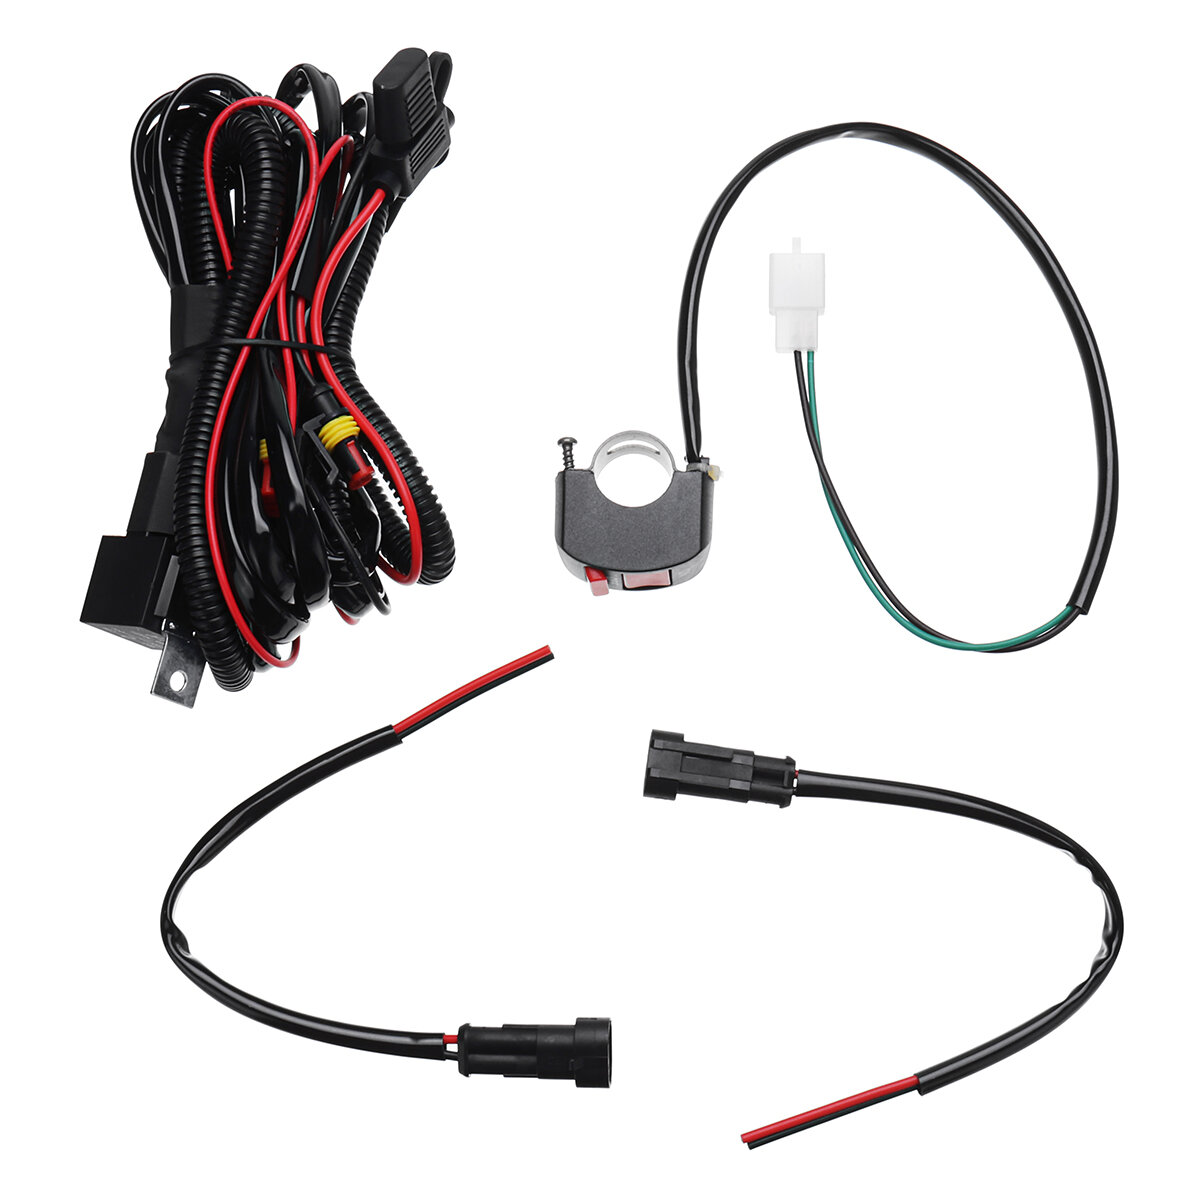 hight resolution of 10a relsy switch fog light spot wiring loom harness kit for universal motorcycle car